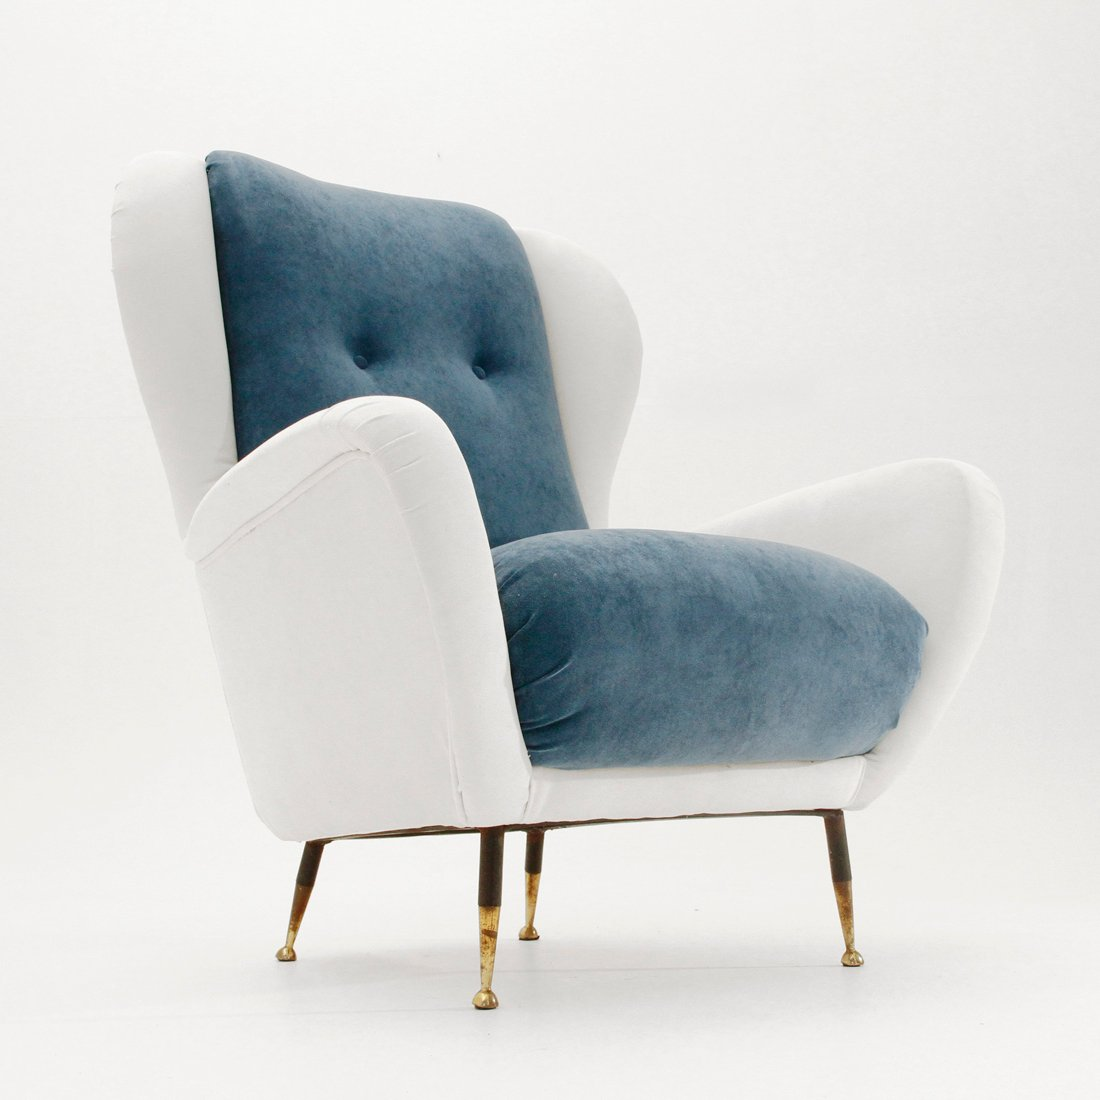 italian midcentury white and blue velvet armchair 1950s - Blue Velvet Chair